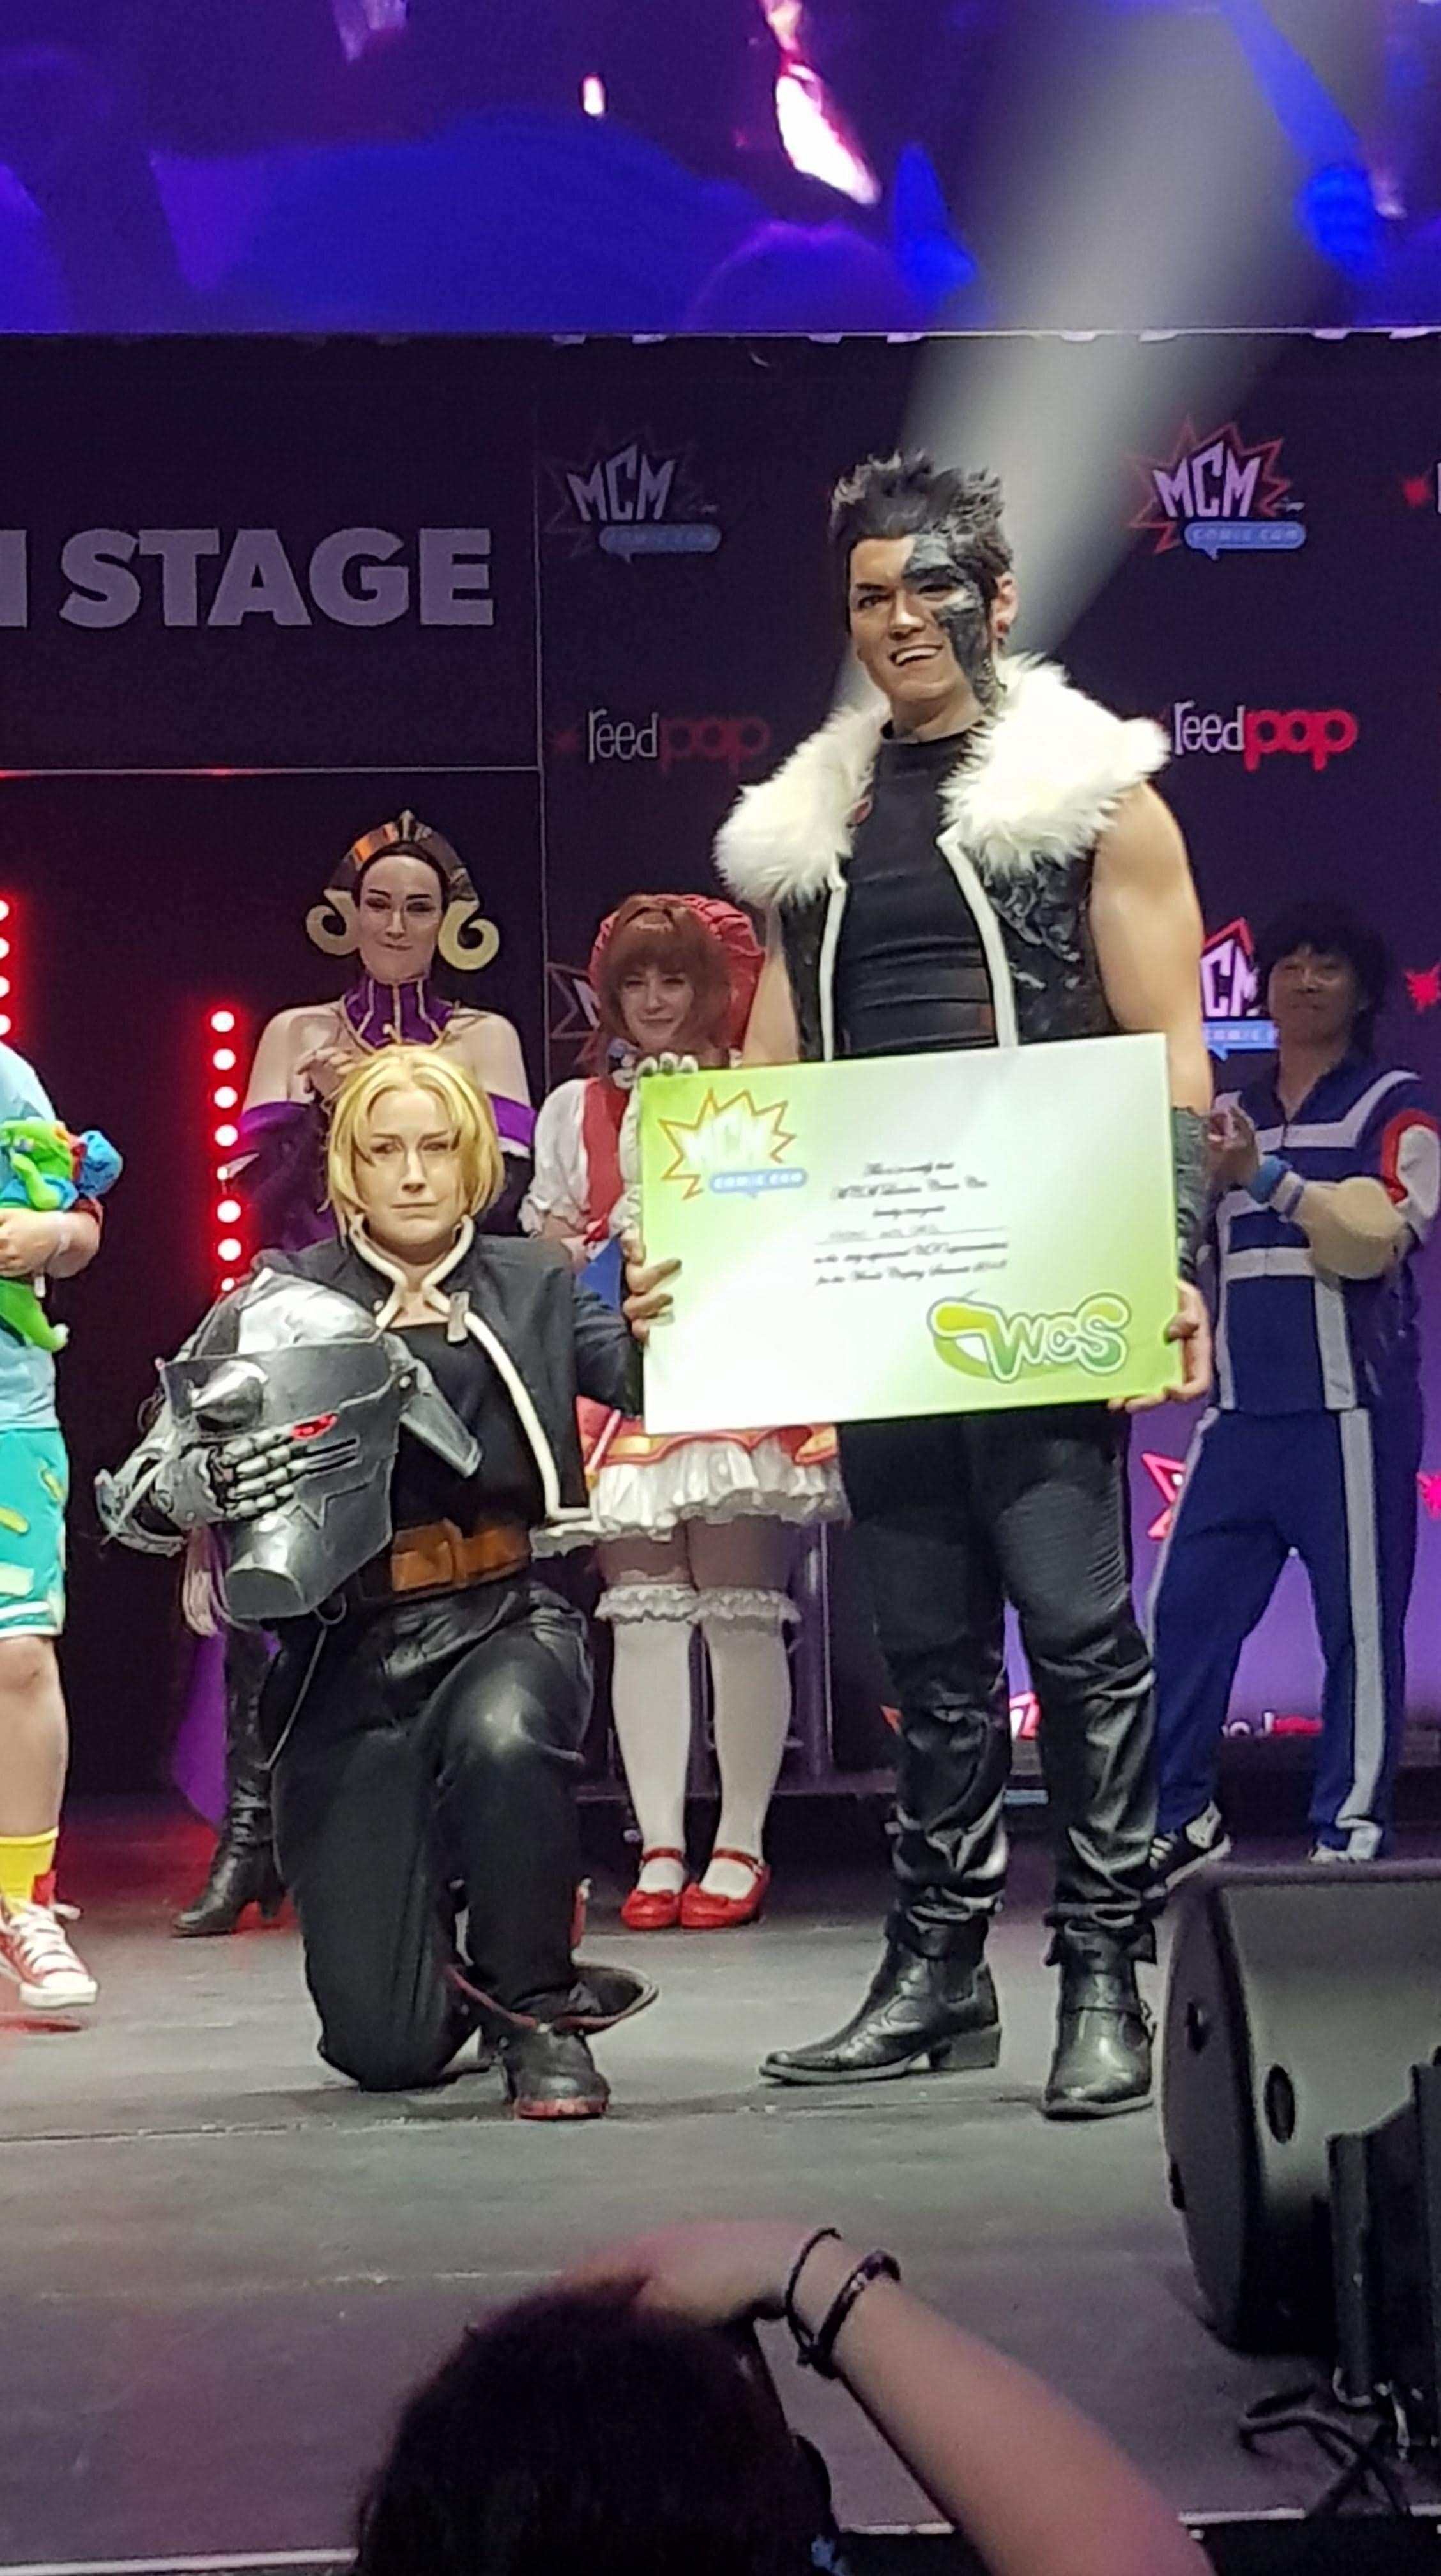 Edward Elric and Greed Cosplay From FullMetal Alchemist Winning The World Cosplay Summit 2018 Qualifier To Go To Japan